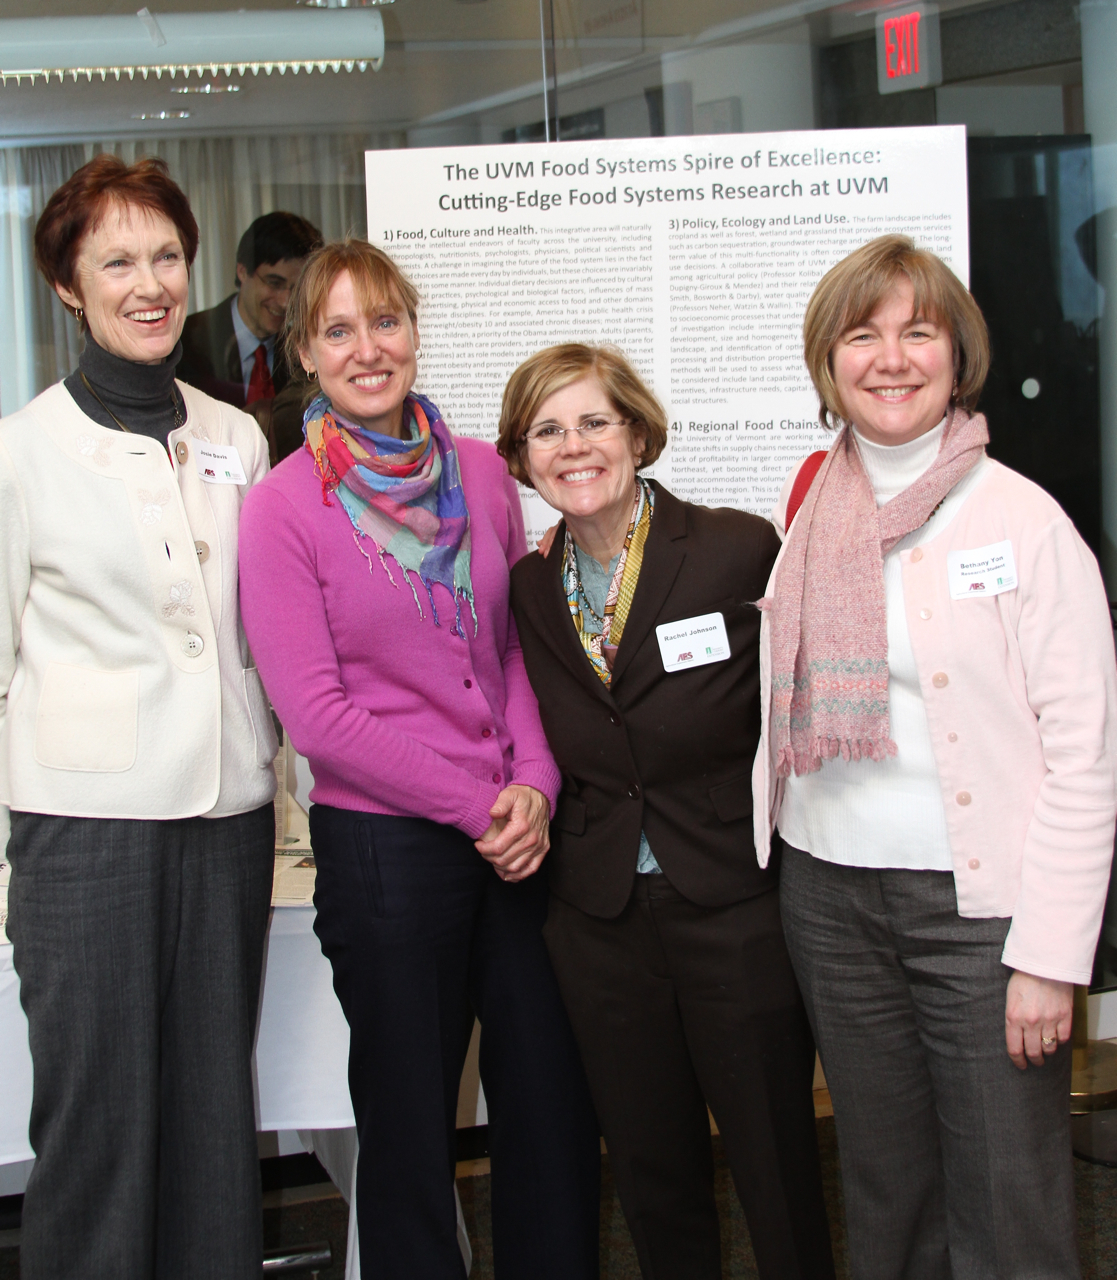 Four researchers smile in front of their display.